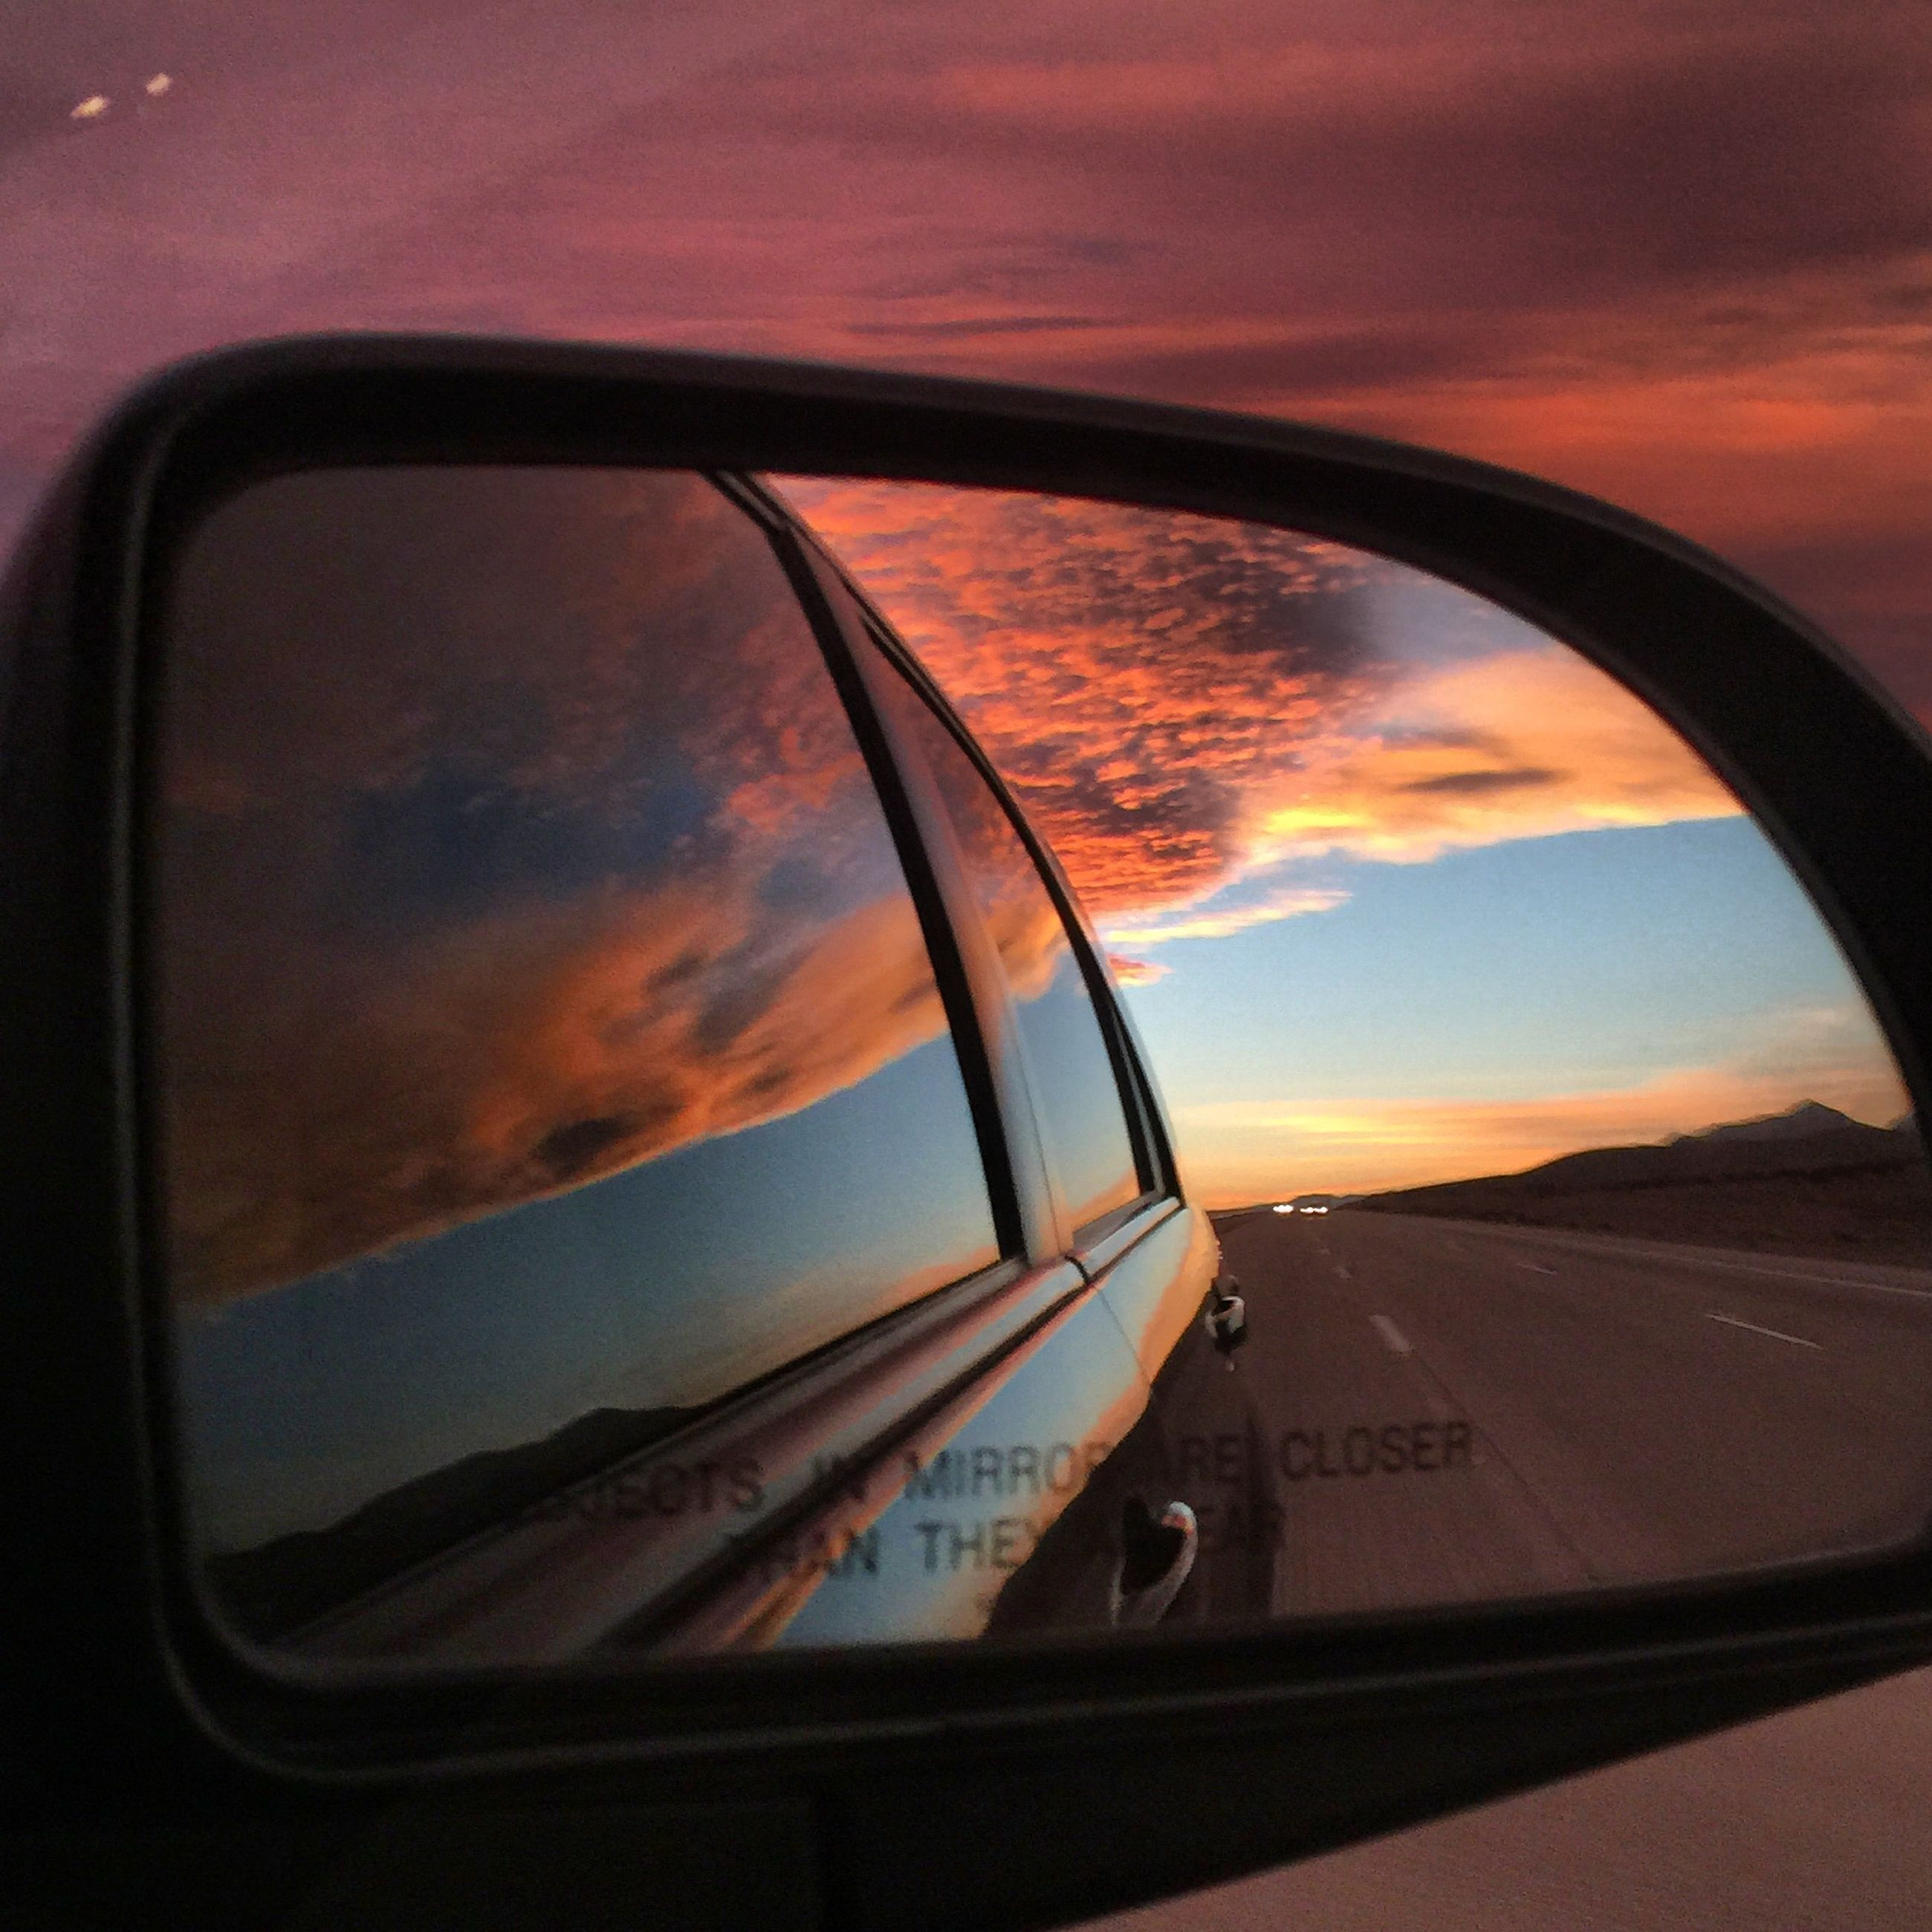 transportation, mode of transport, sunset, sky, car, land vehicle, cloud - sky, side-view mirror, vehicle interior, glass - material, part of, reflection, cloud, transparent, road, travel, cropped, orange color, close-up, car interior